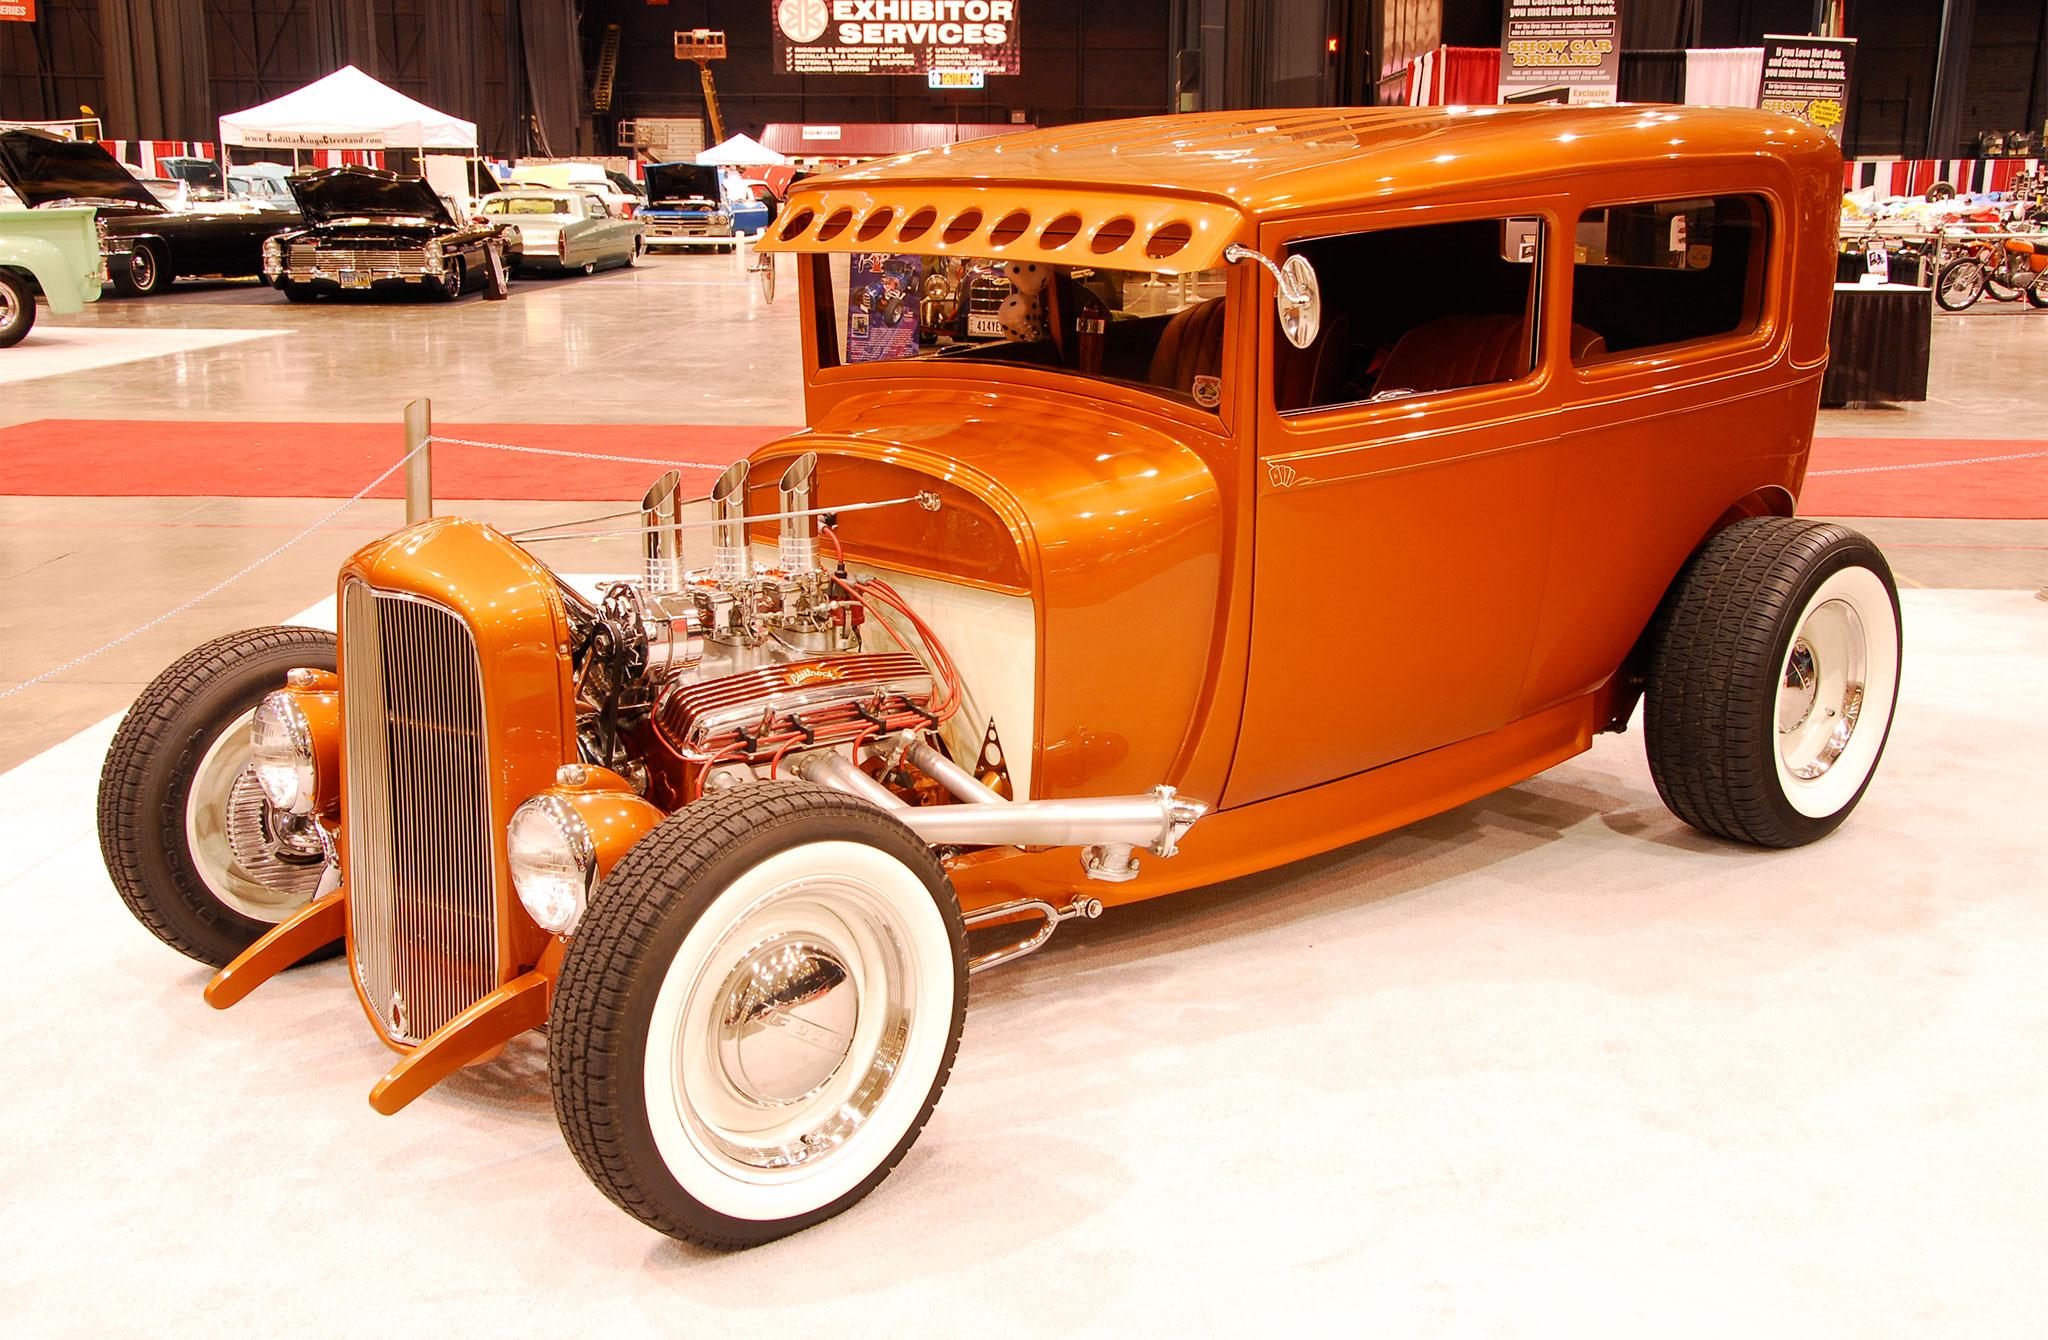 Sporting a 3-inch chop and plenty of PPG Atomic Orange gloss, Lucky and JoeAnna Nehez's 199 Ford had the perfect nostalgic look.